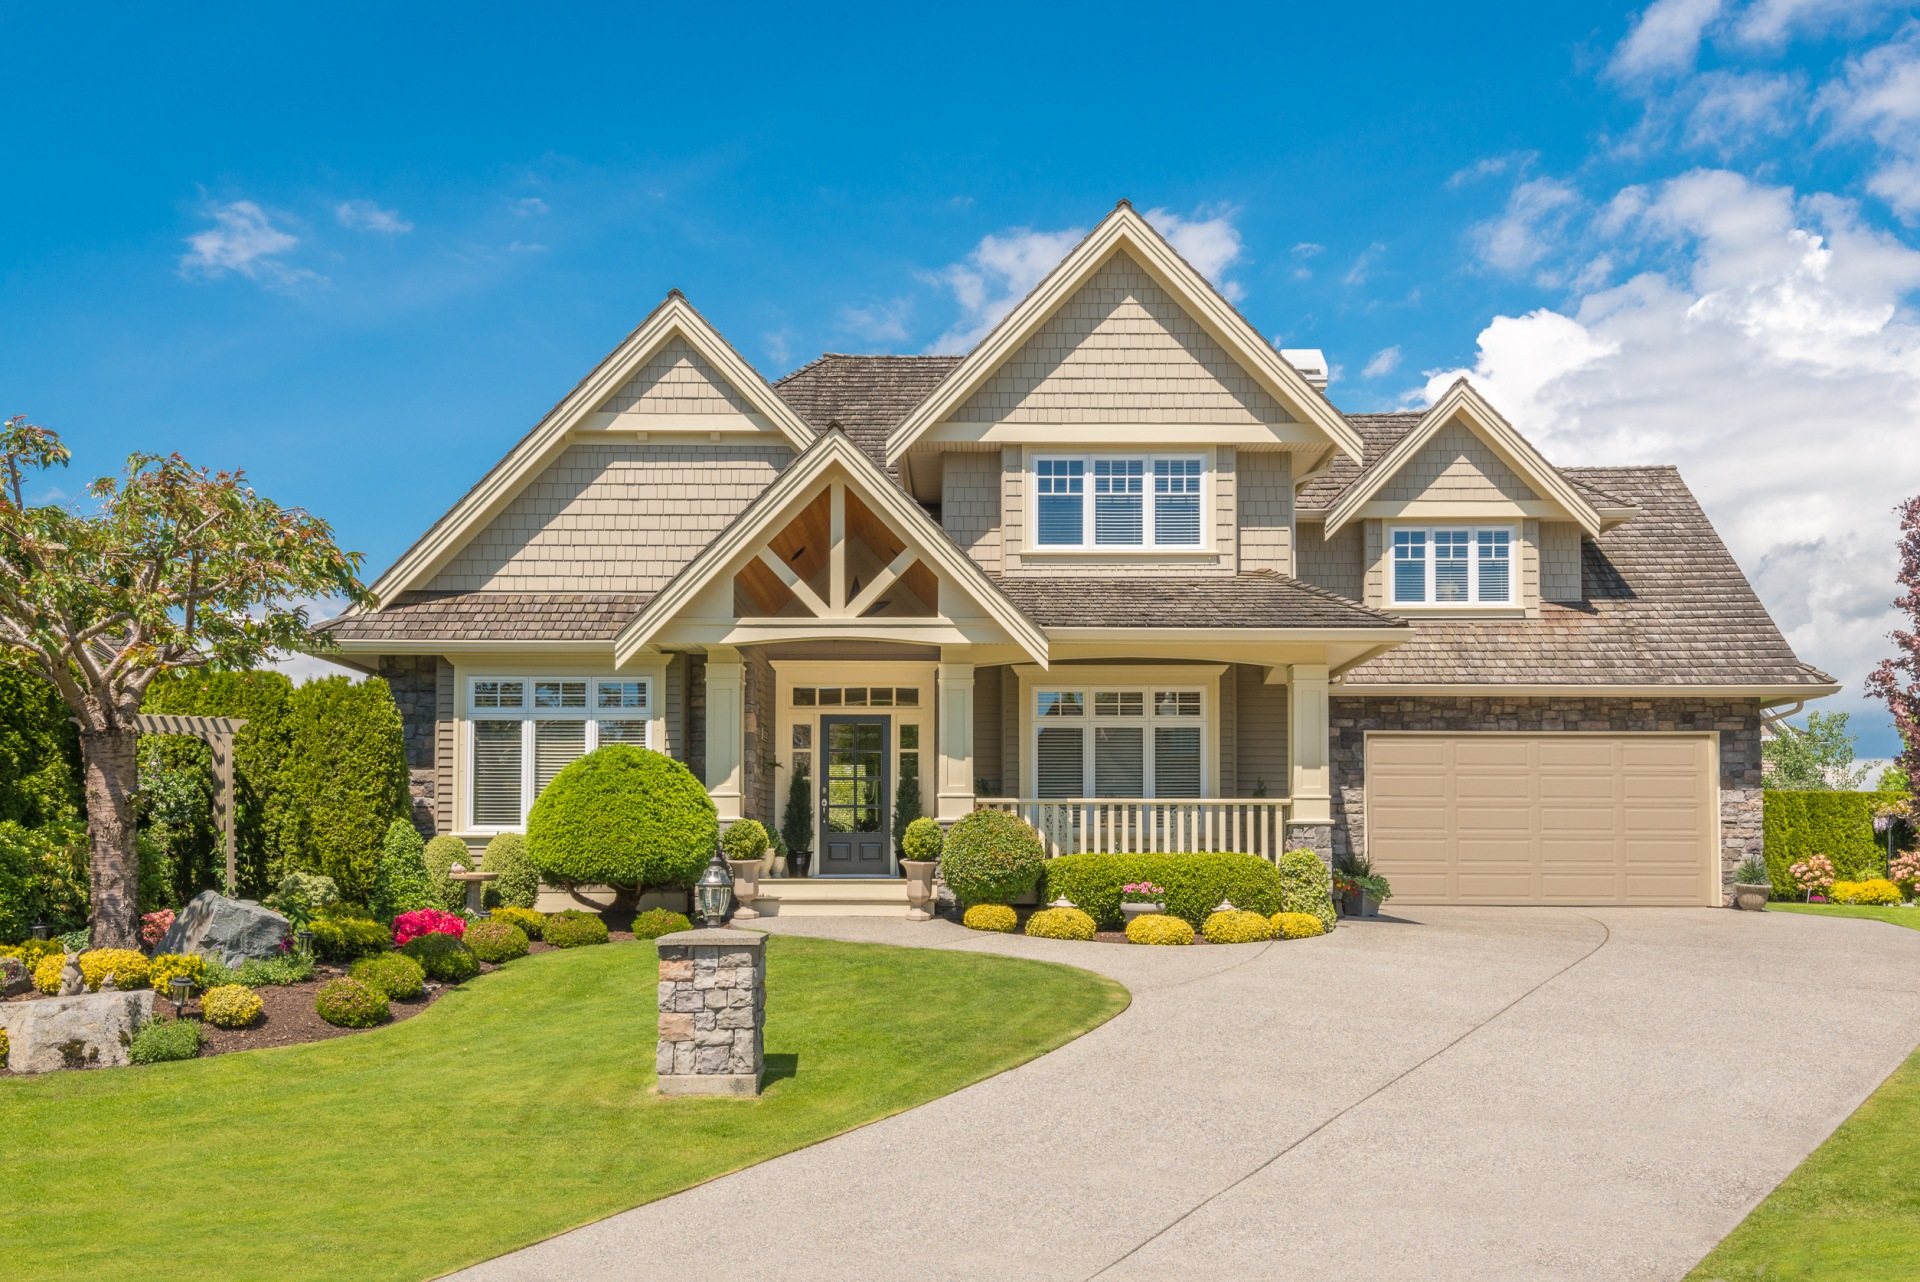 Should You Clean Your Septic System Before Selling Your Home?